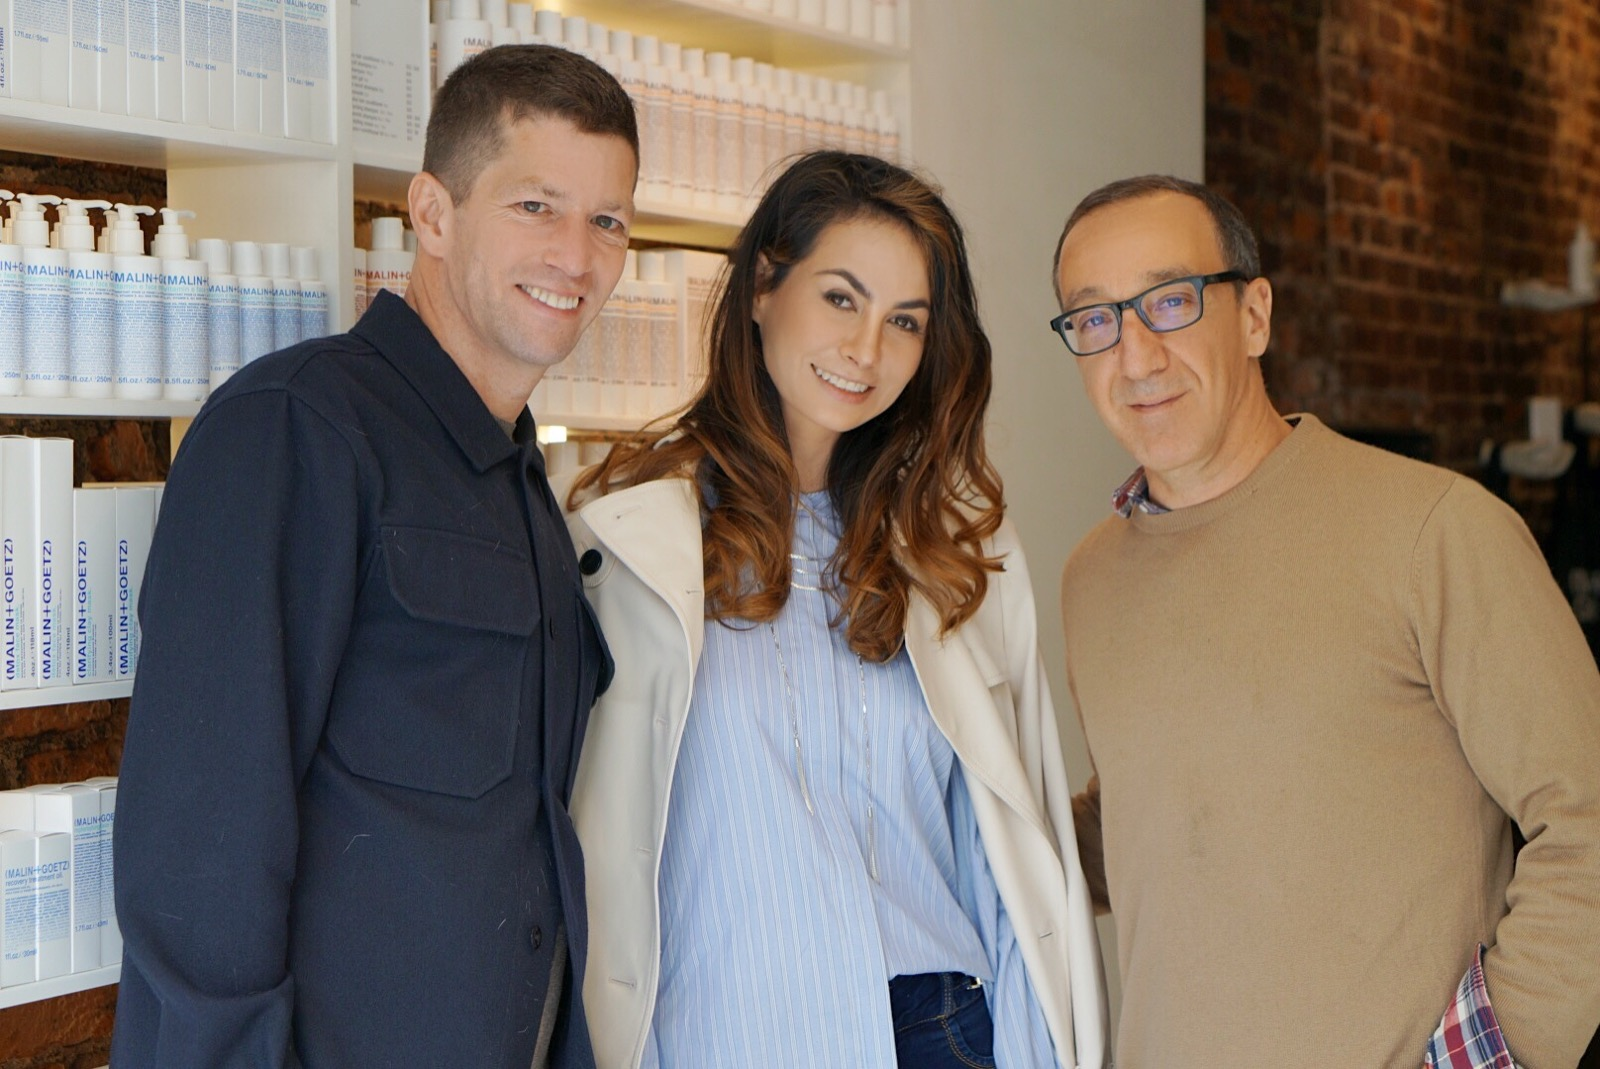 MALIN + GOETZ interview with MAtthew and Andrew - beauty by Di Carolina flight of spice